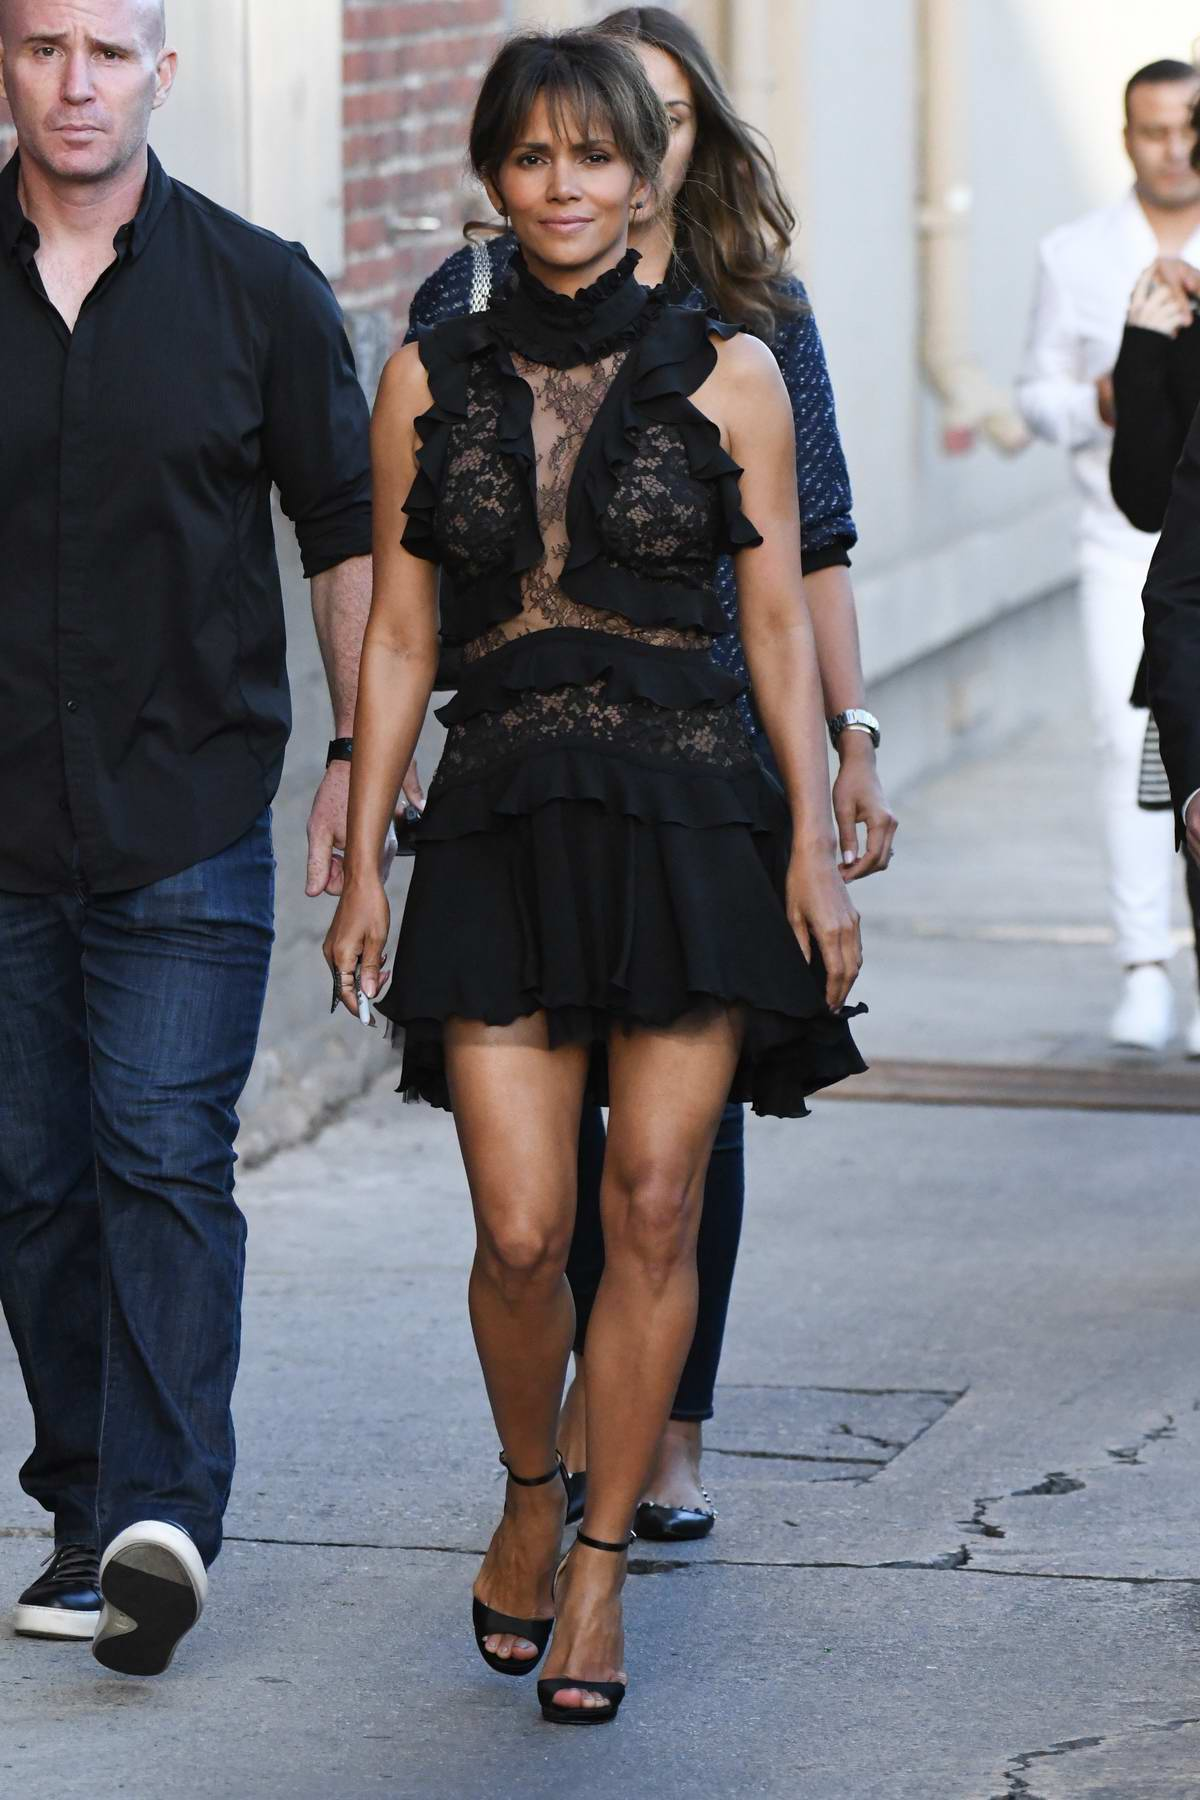 Halle Berry arriving at the Jimmy Kimmel Live in Hollywood, Los Angeles